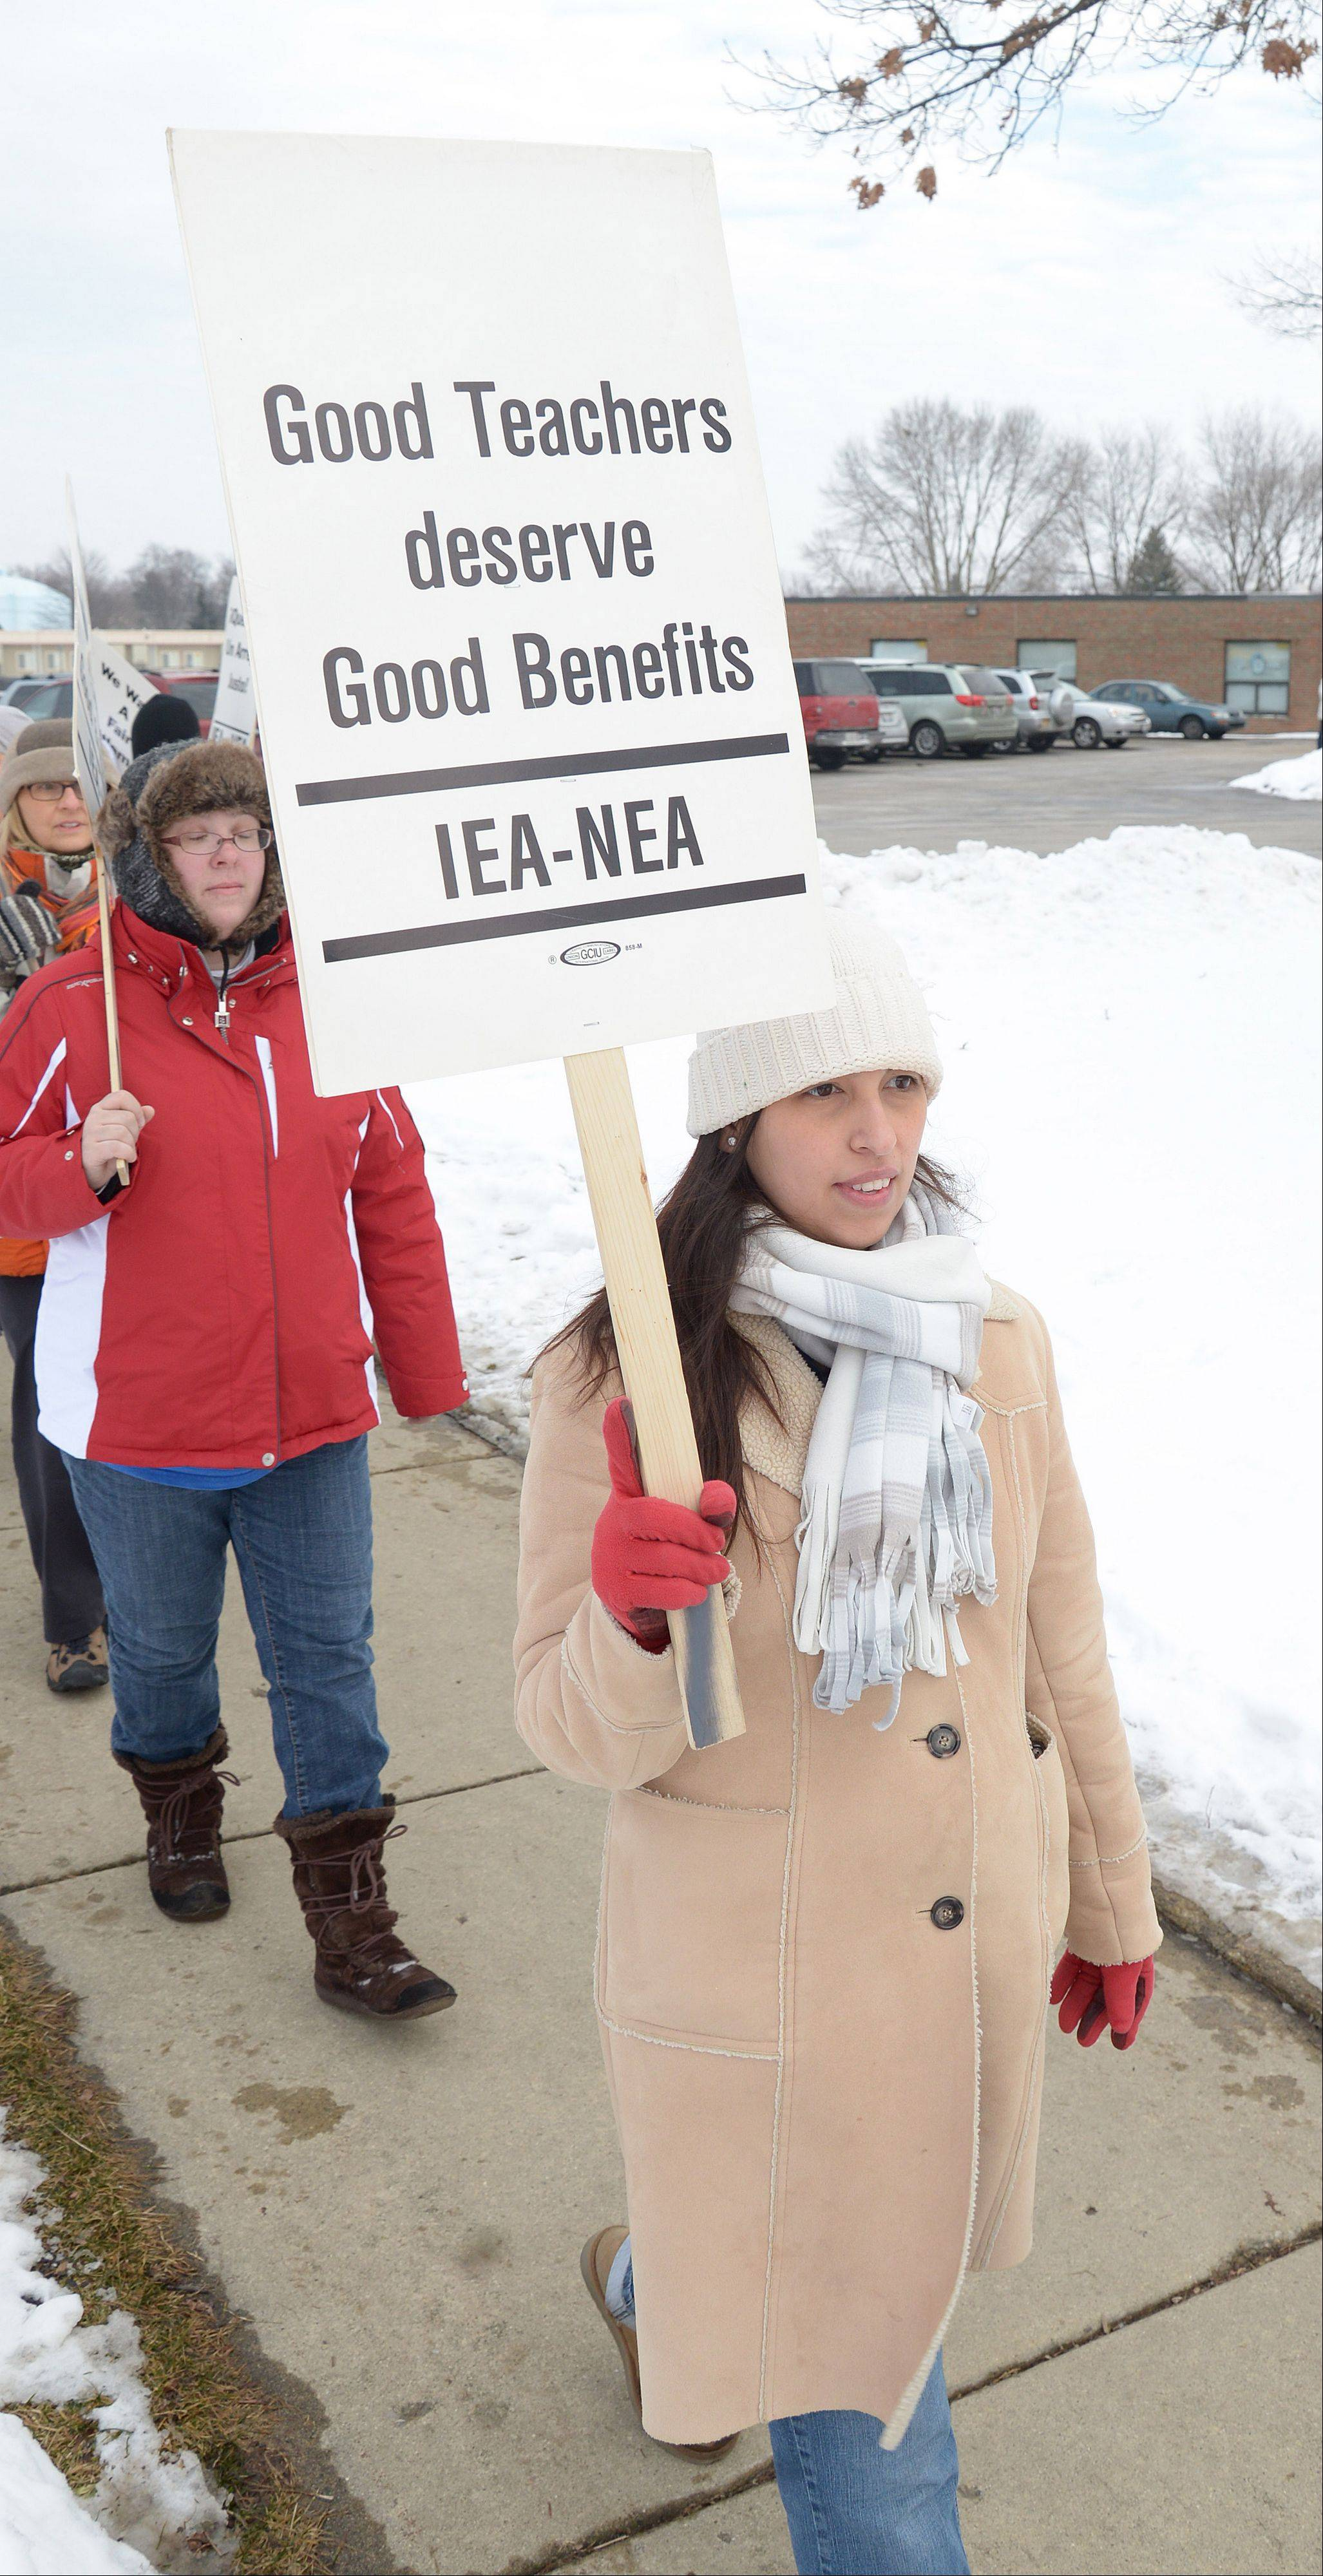 Teachers continued to walk picket lines Wednesday at Gary Elementary School in West Chicago, as negotiating teams for the union and school board returned to the bargaining table for the fifth time in nine days.